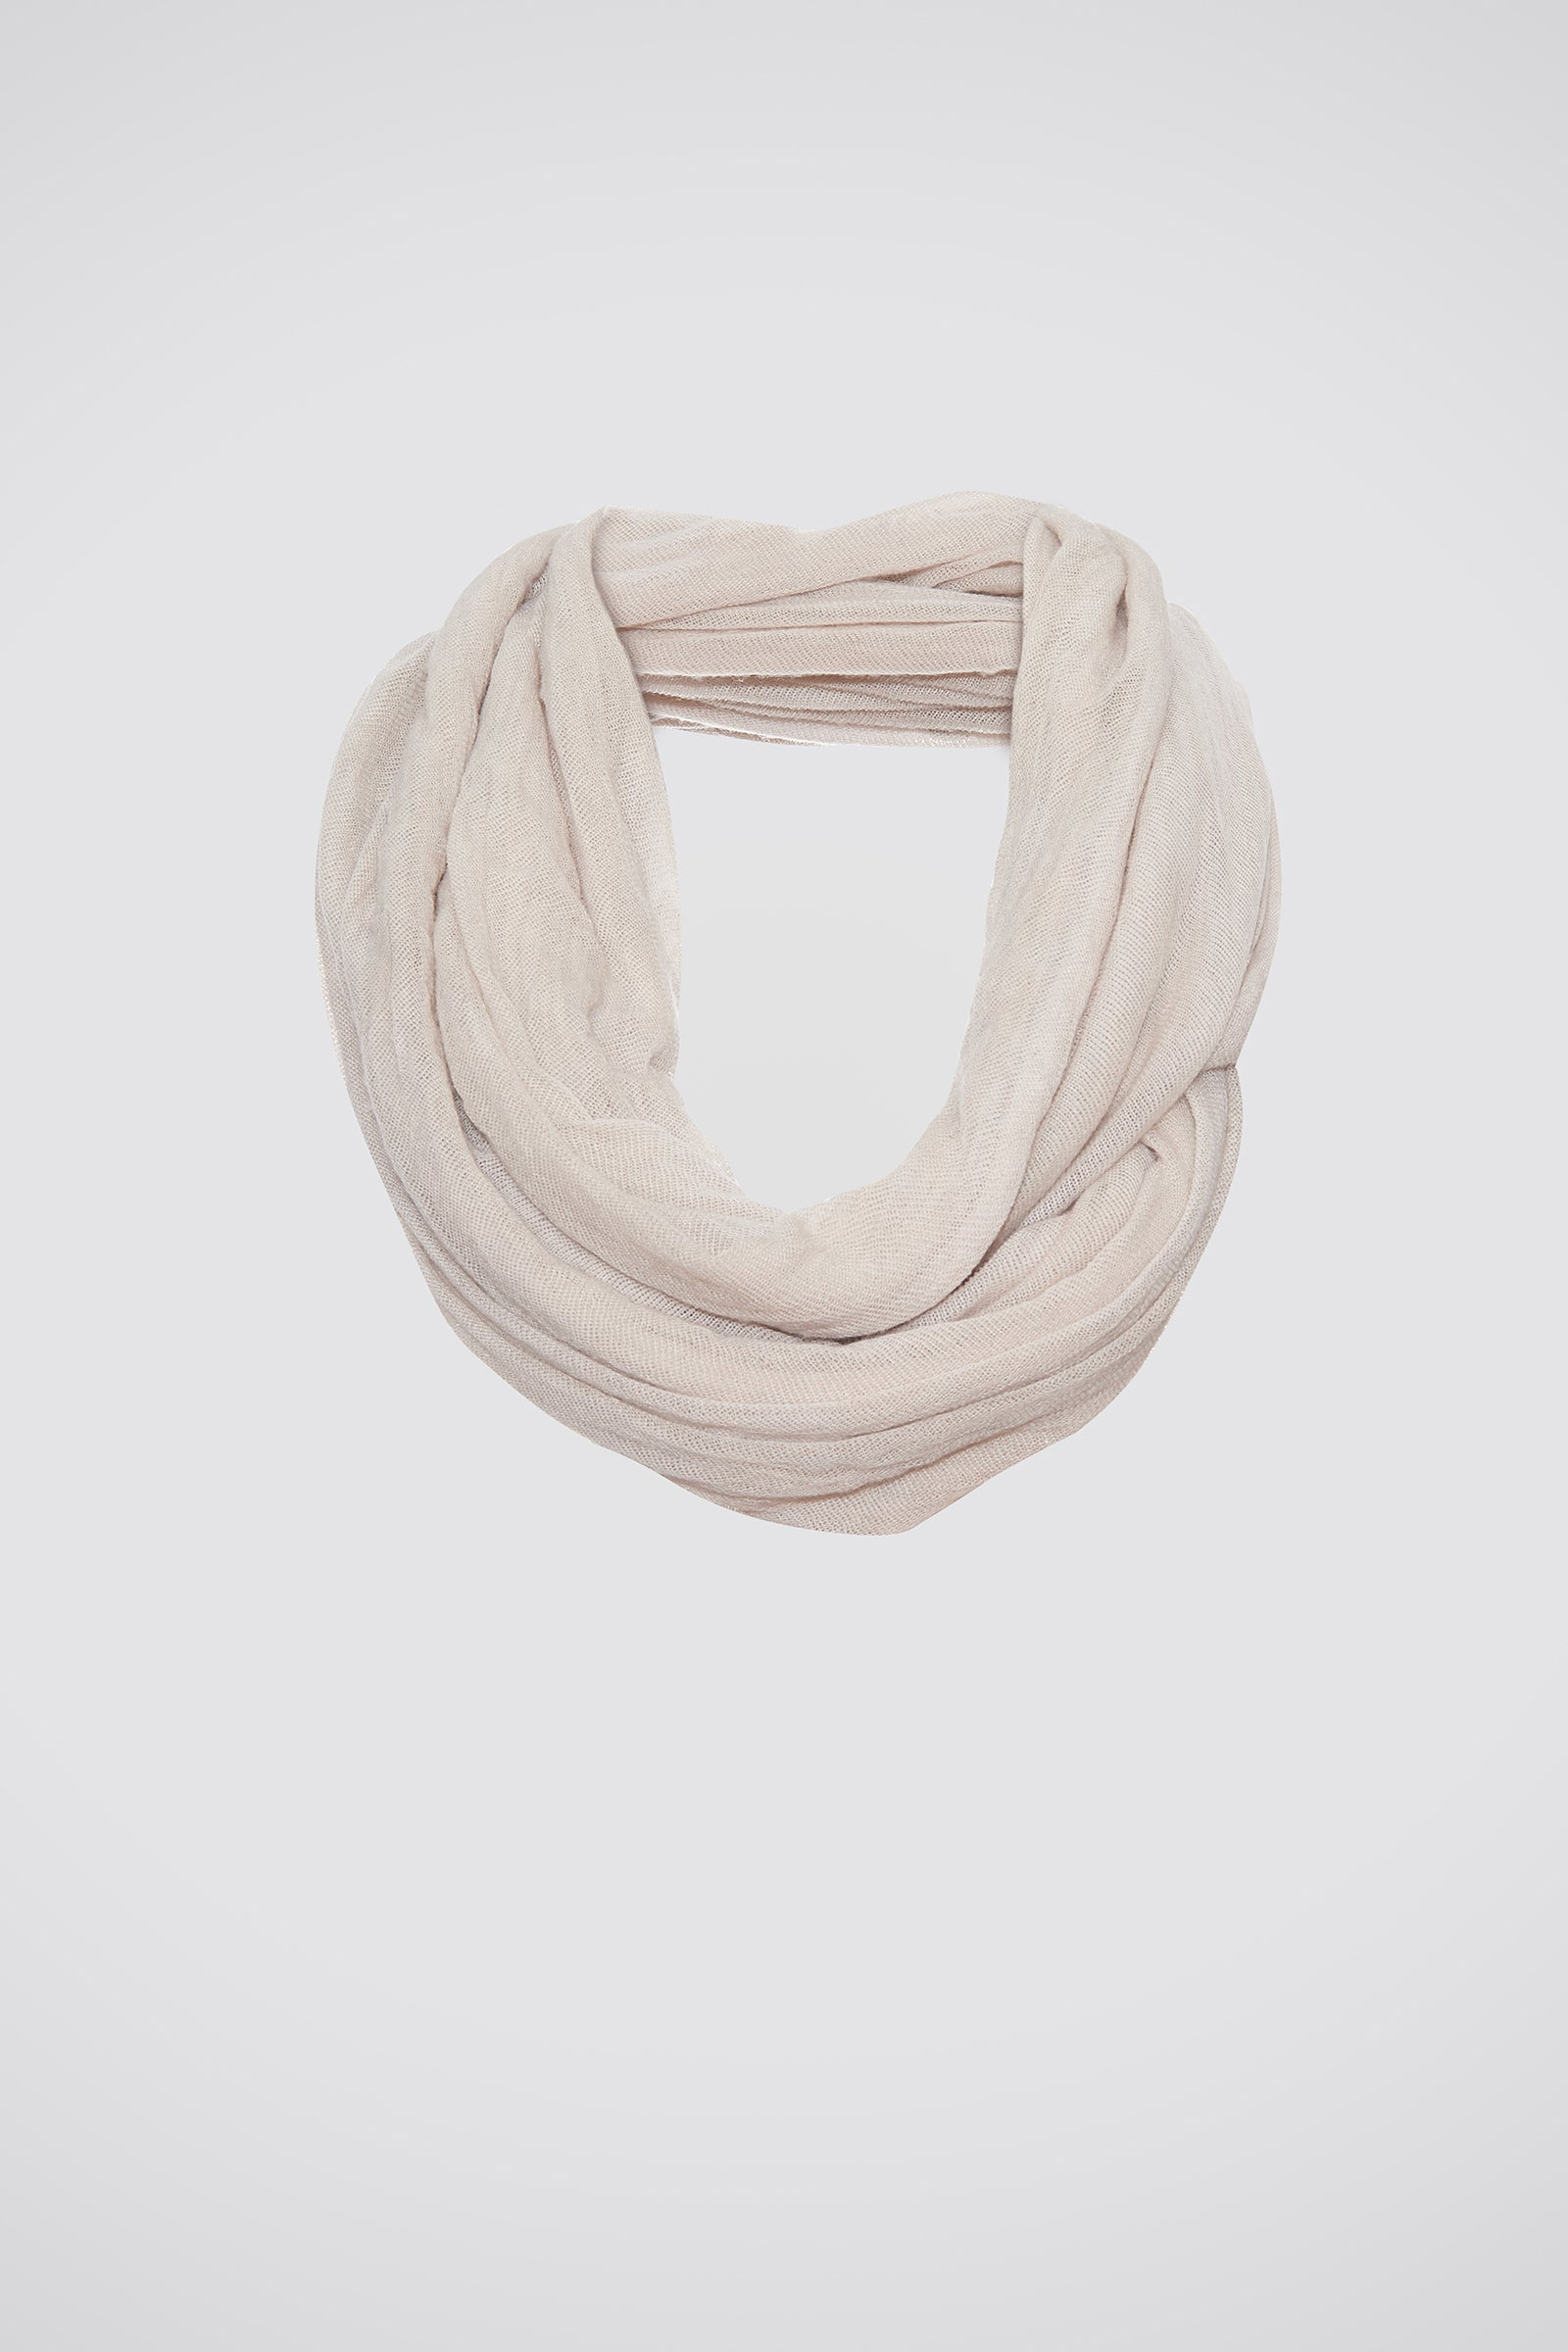 Kal Rieman Infinity Circle Scarf in Cream